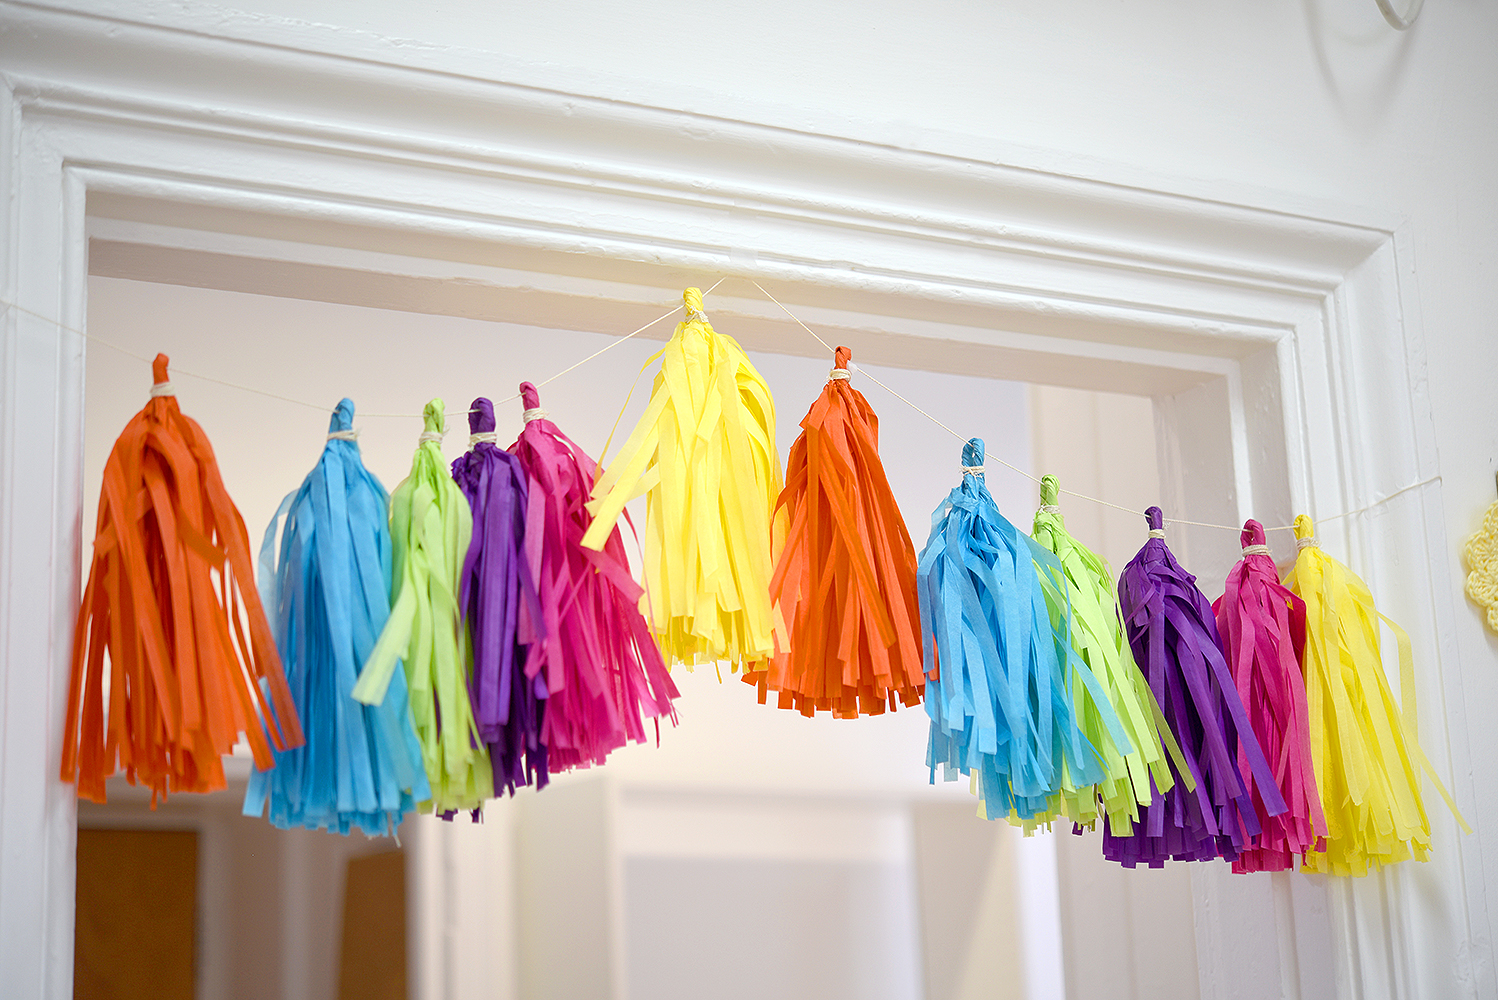 Multi-coloured Handmade Paper Tassels hanging above the door at Tea and Crafting's new workshop space